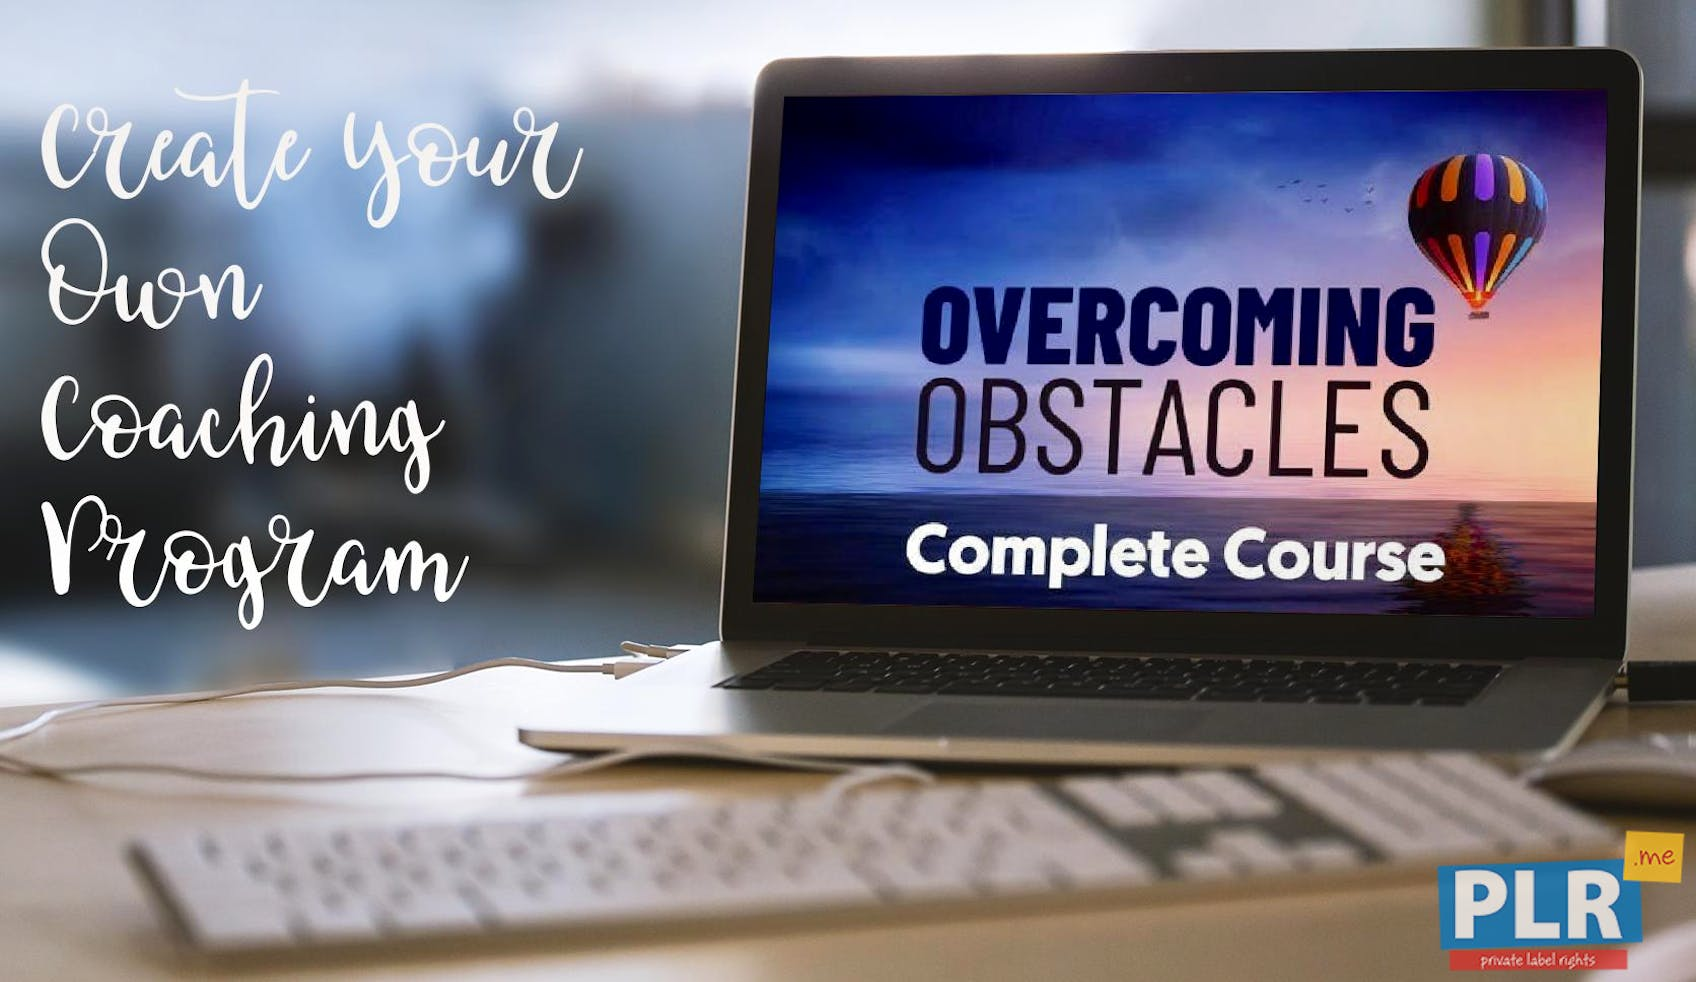 Overcoming Obstacles: Build Grit, Resilience And Mental Toughness - Course